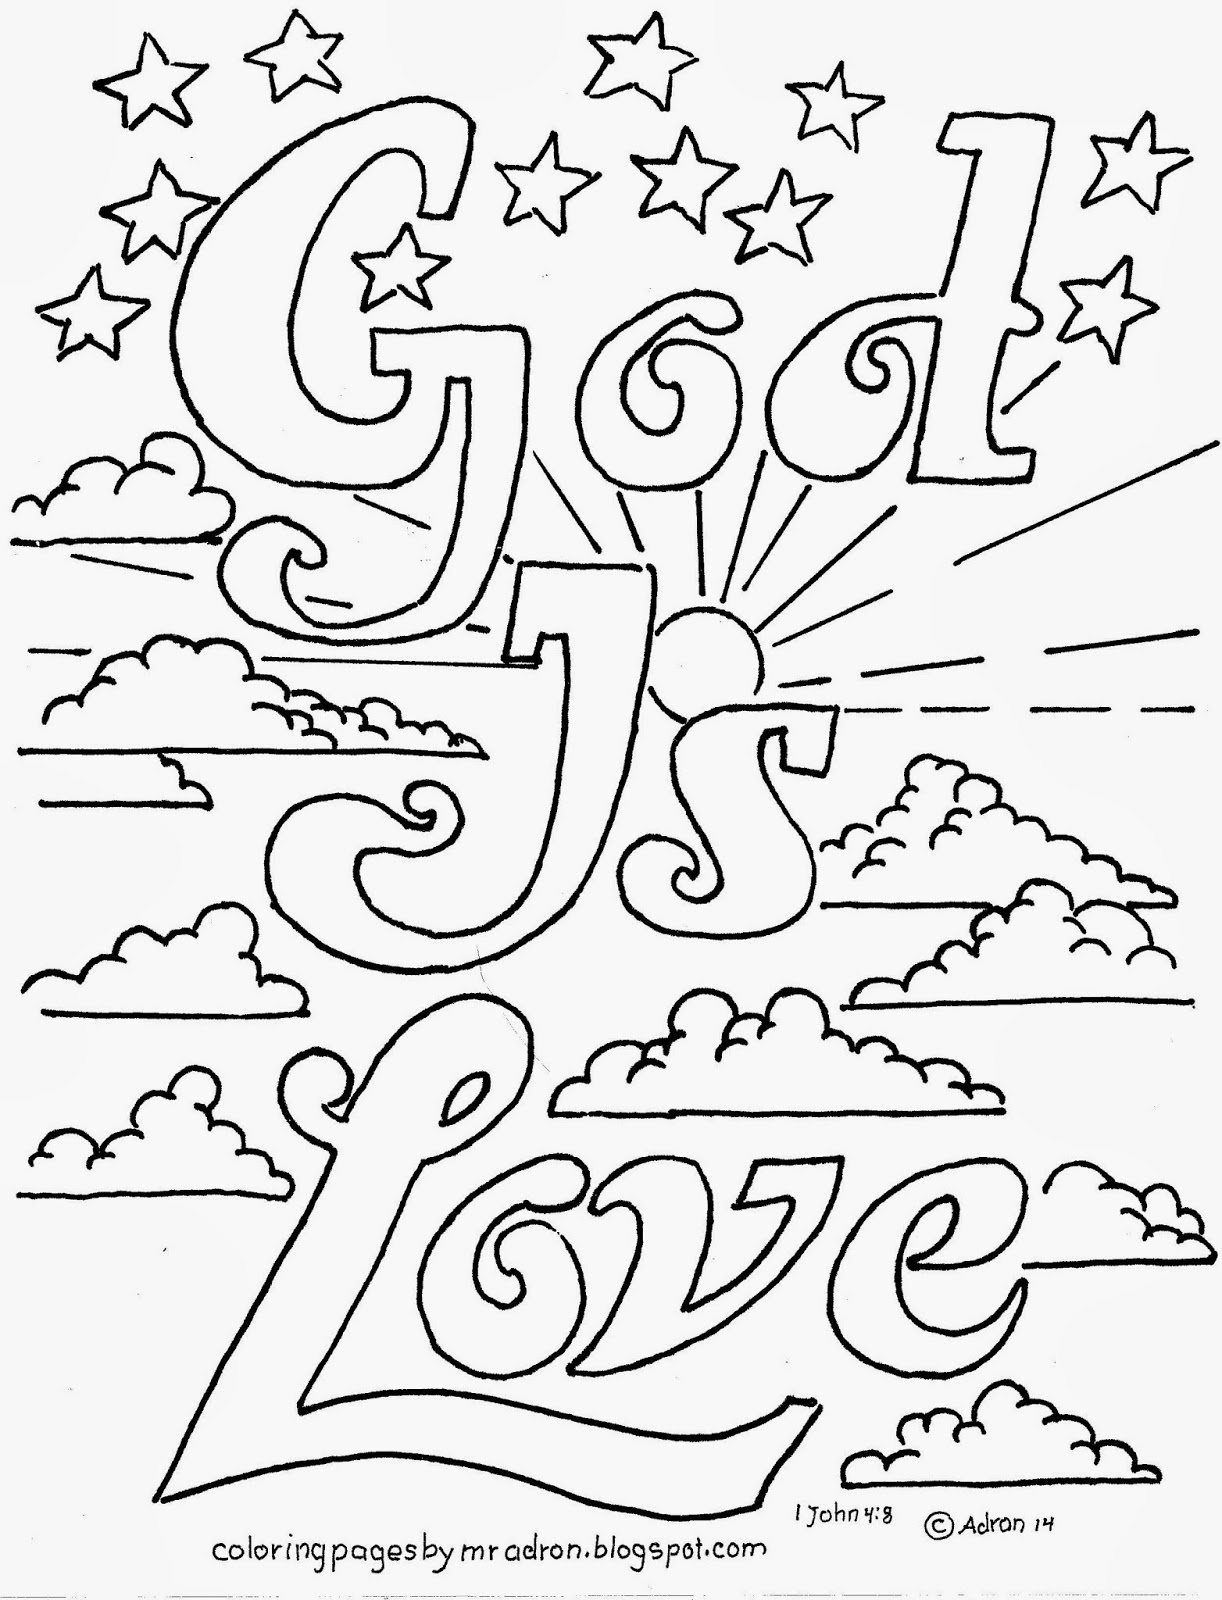 coloring sheet god coloring pages for kids by mr adron god is love coloring god sheet